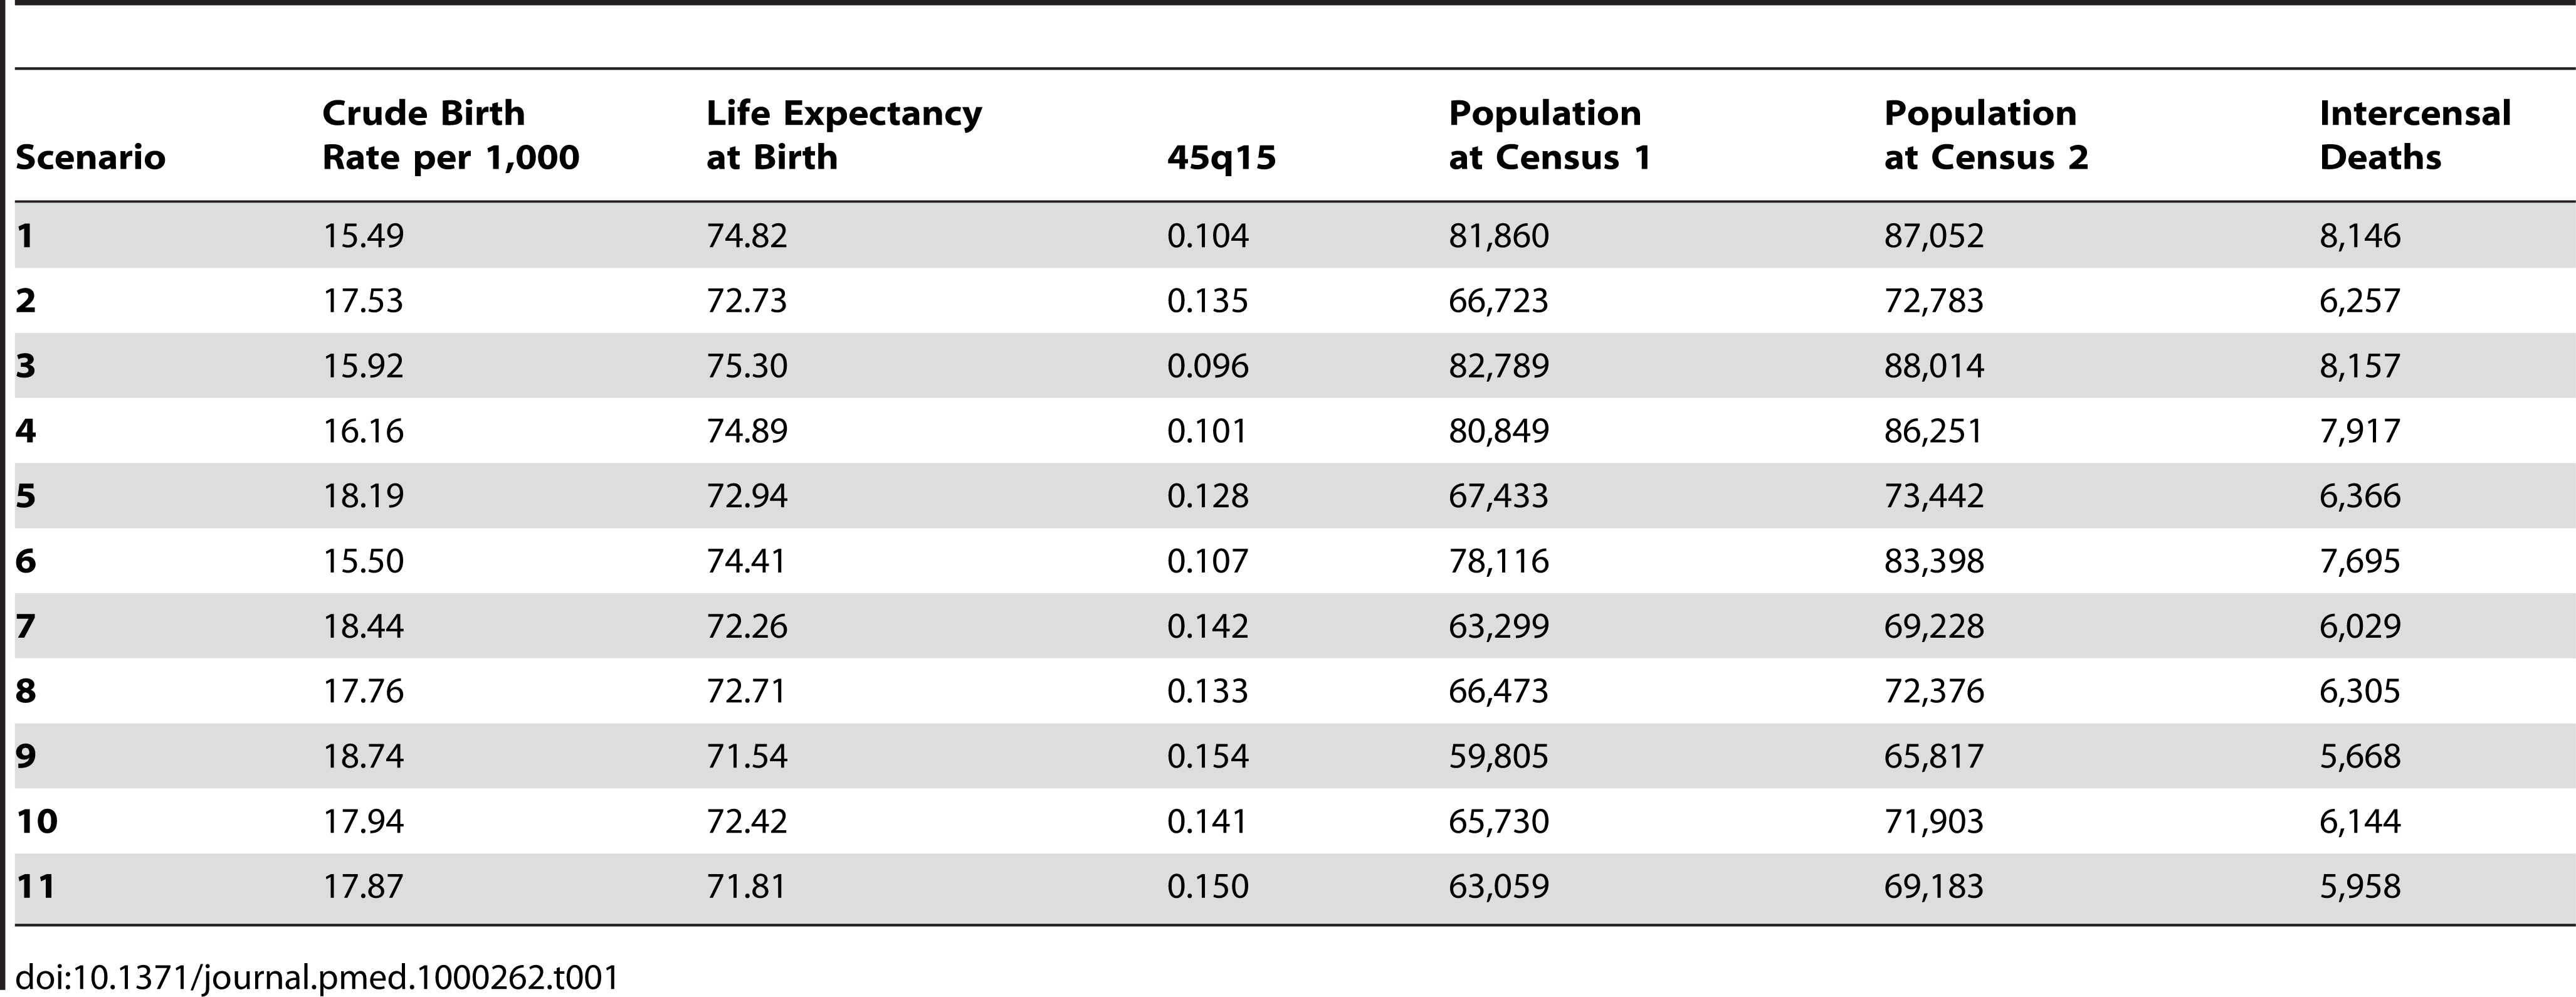 Mortality and fertility levels and trends in the simulations.